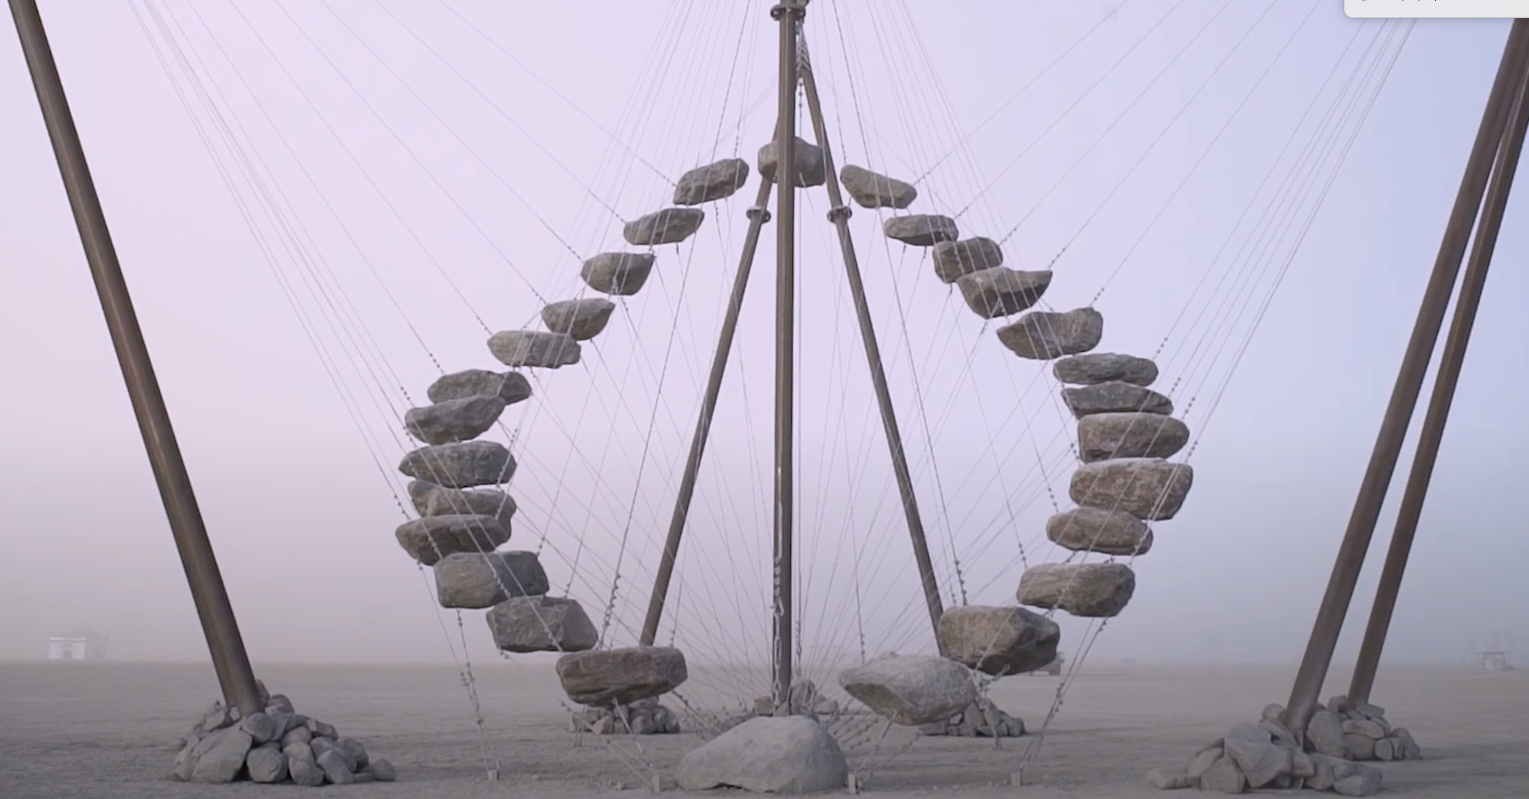 Anchors used to secure Burning Man Sculpture made of steel and stone. PE46-Hex Penetrator